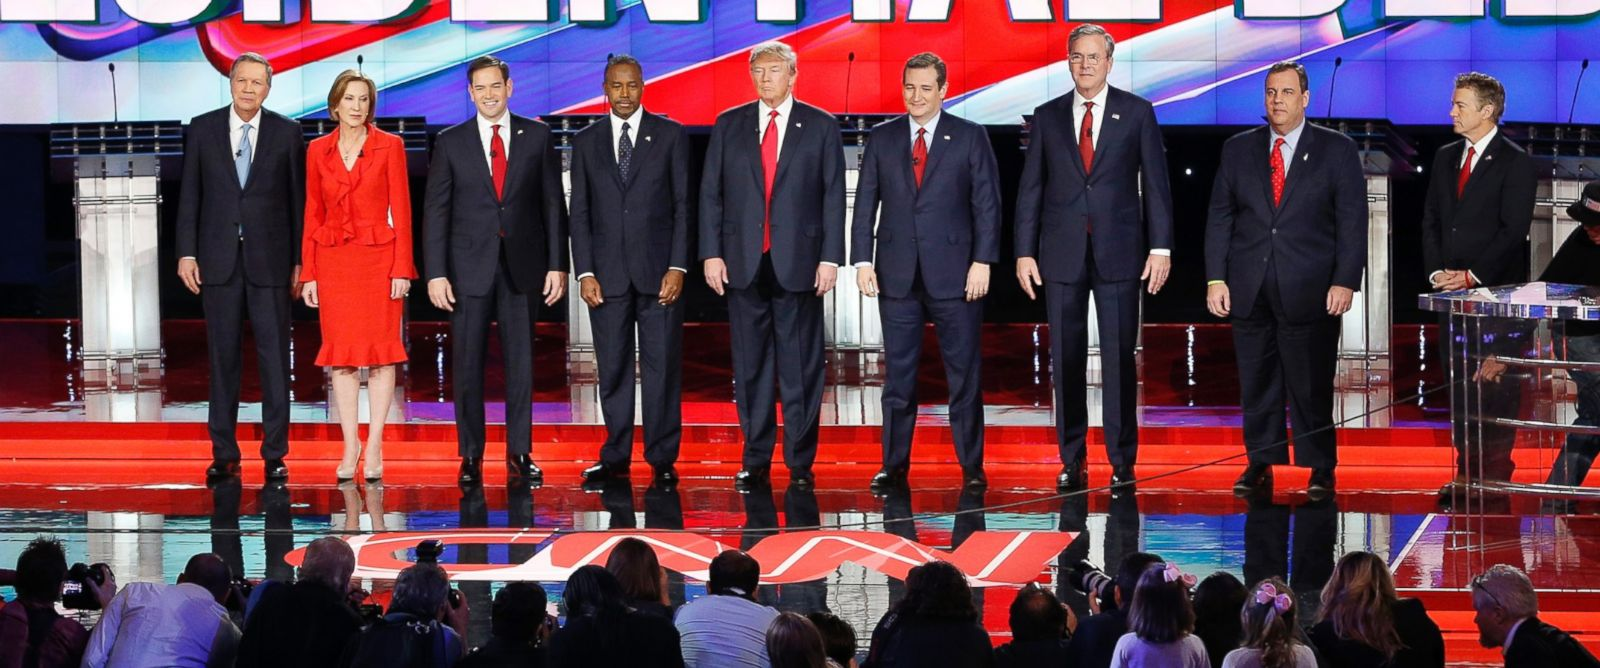 AP_gop_debate_group_2_jef_151215_12x5_1600